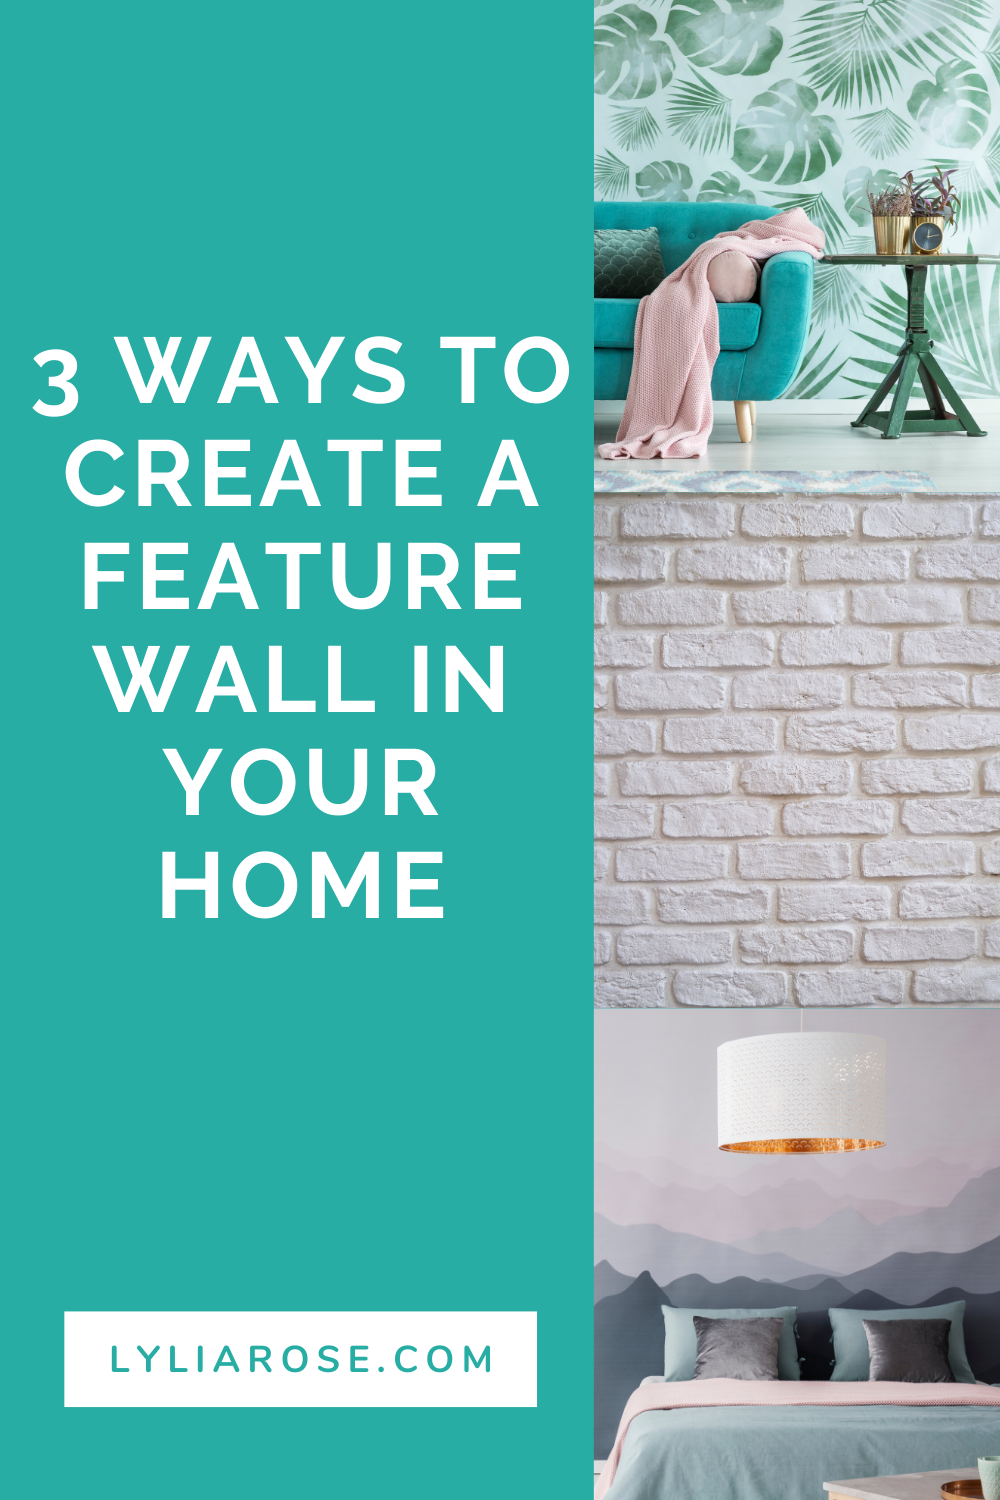 3 ways to create a feature wall in your home (1)